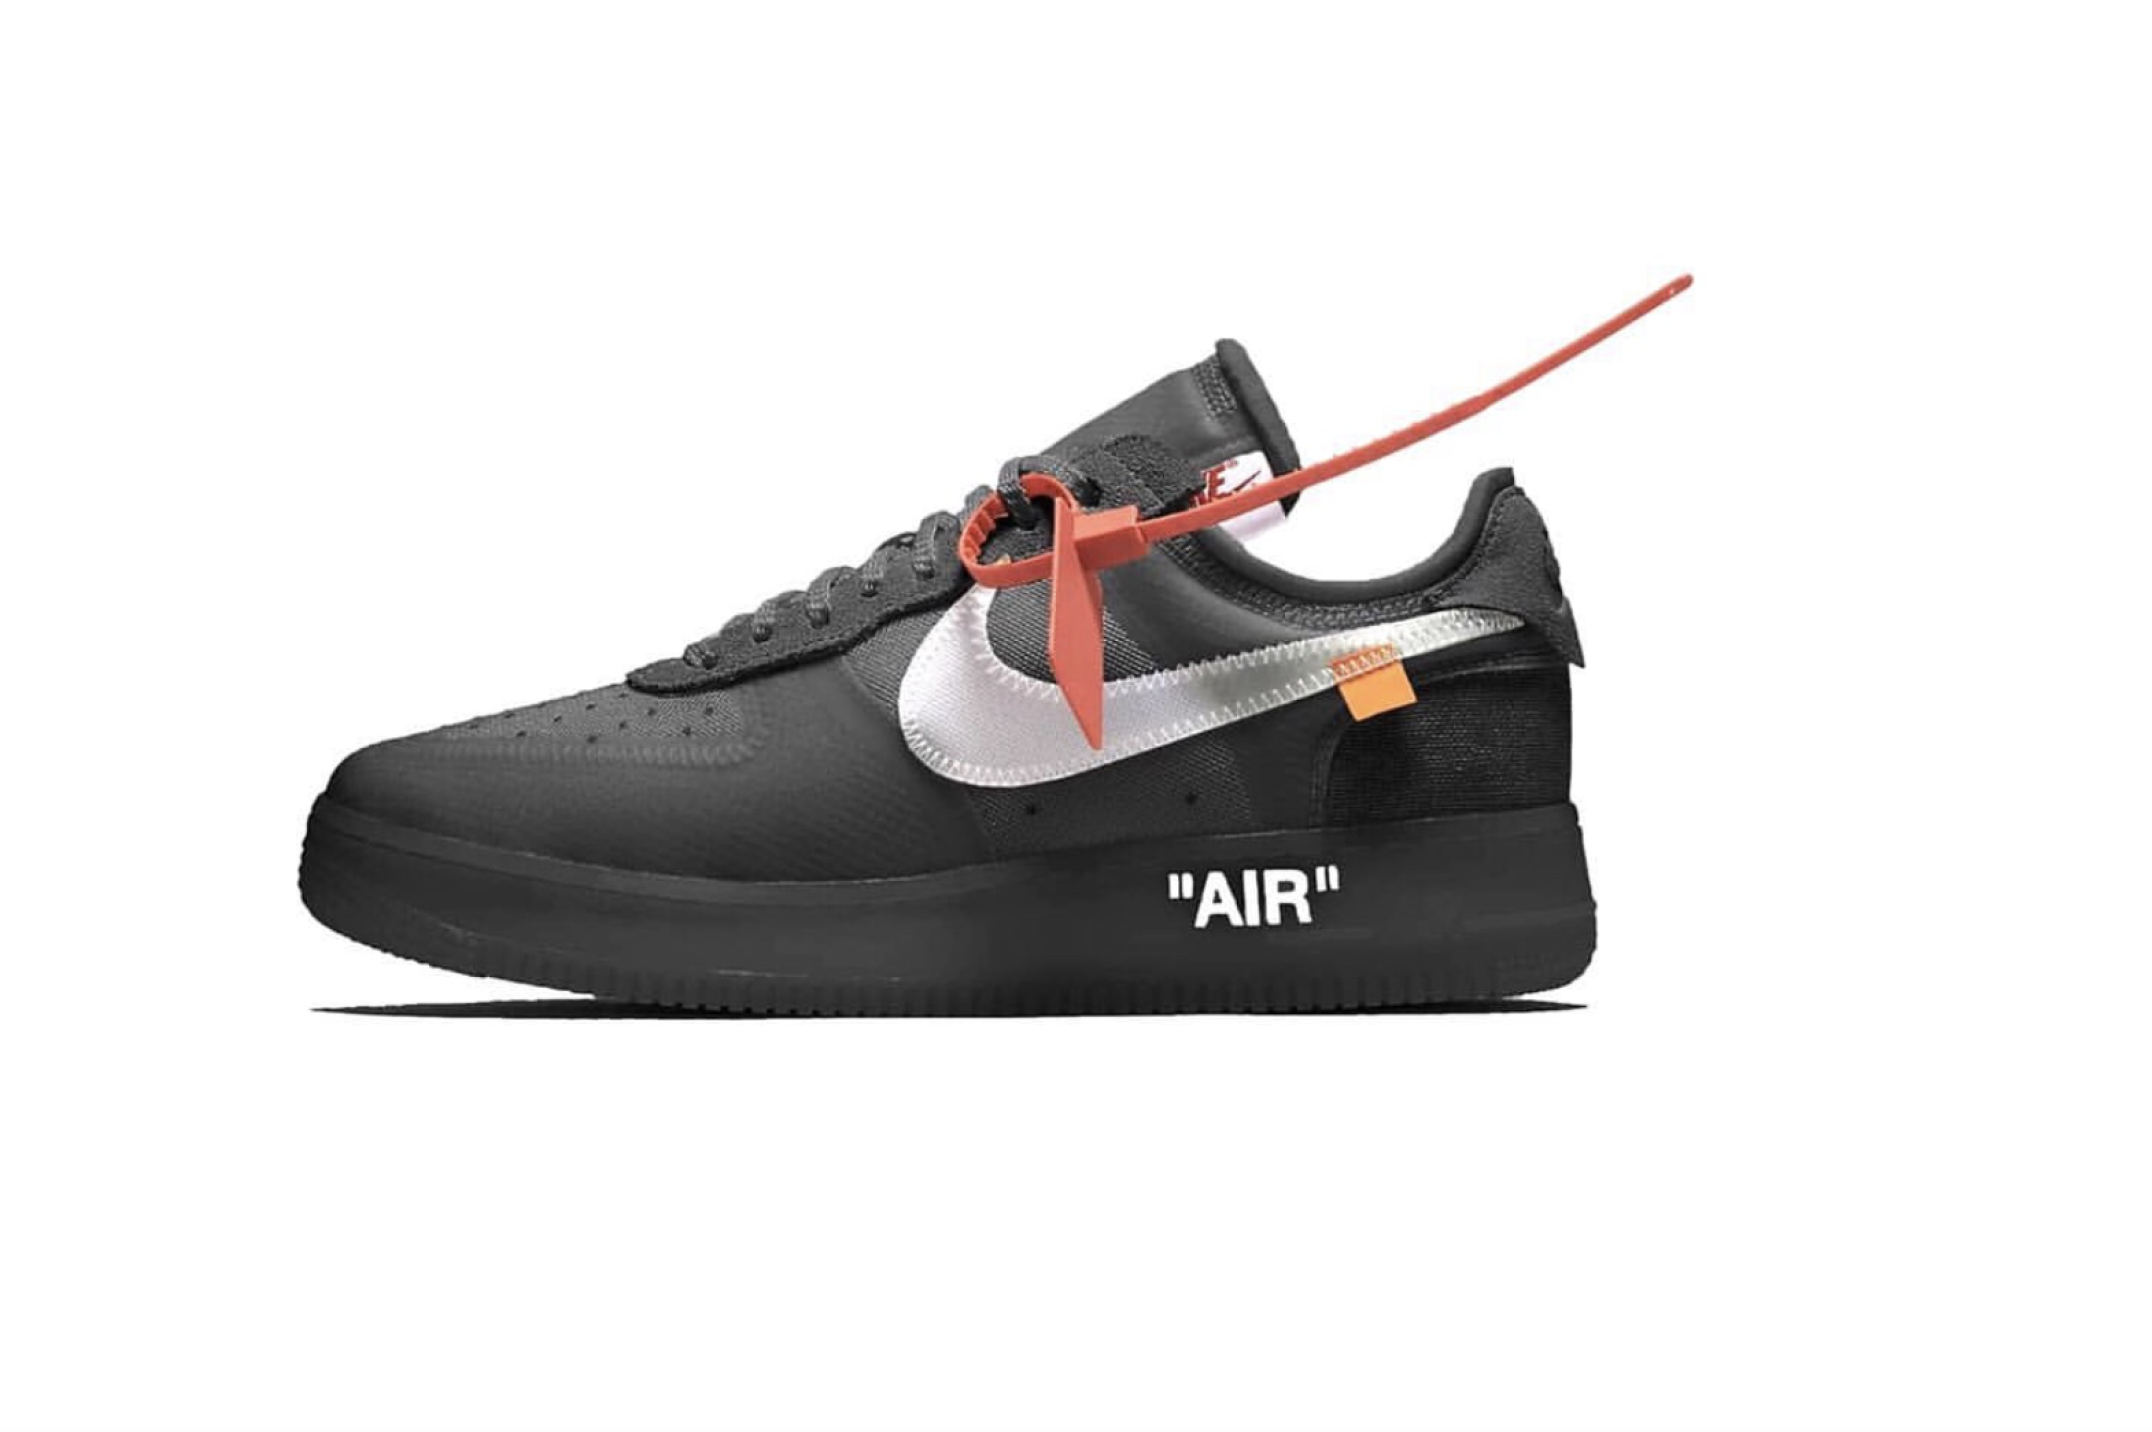 Off-White™ — Zip-Tie Tag what is it